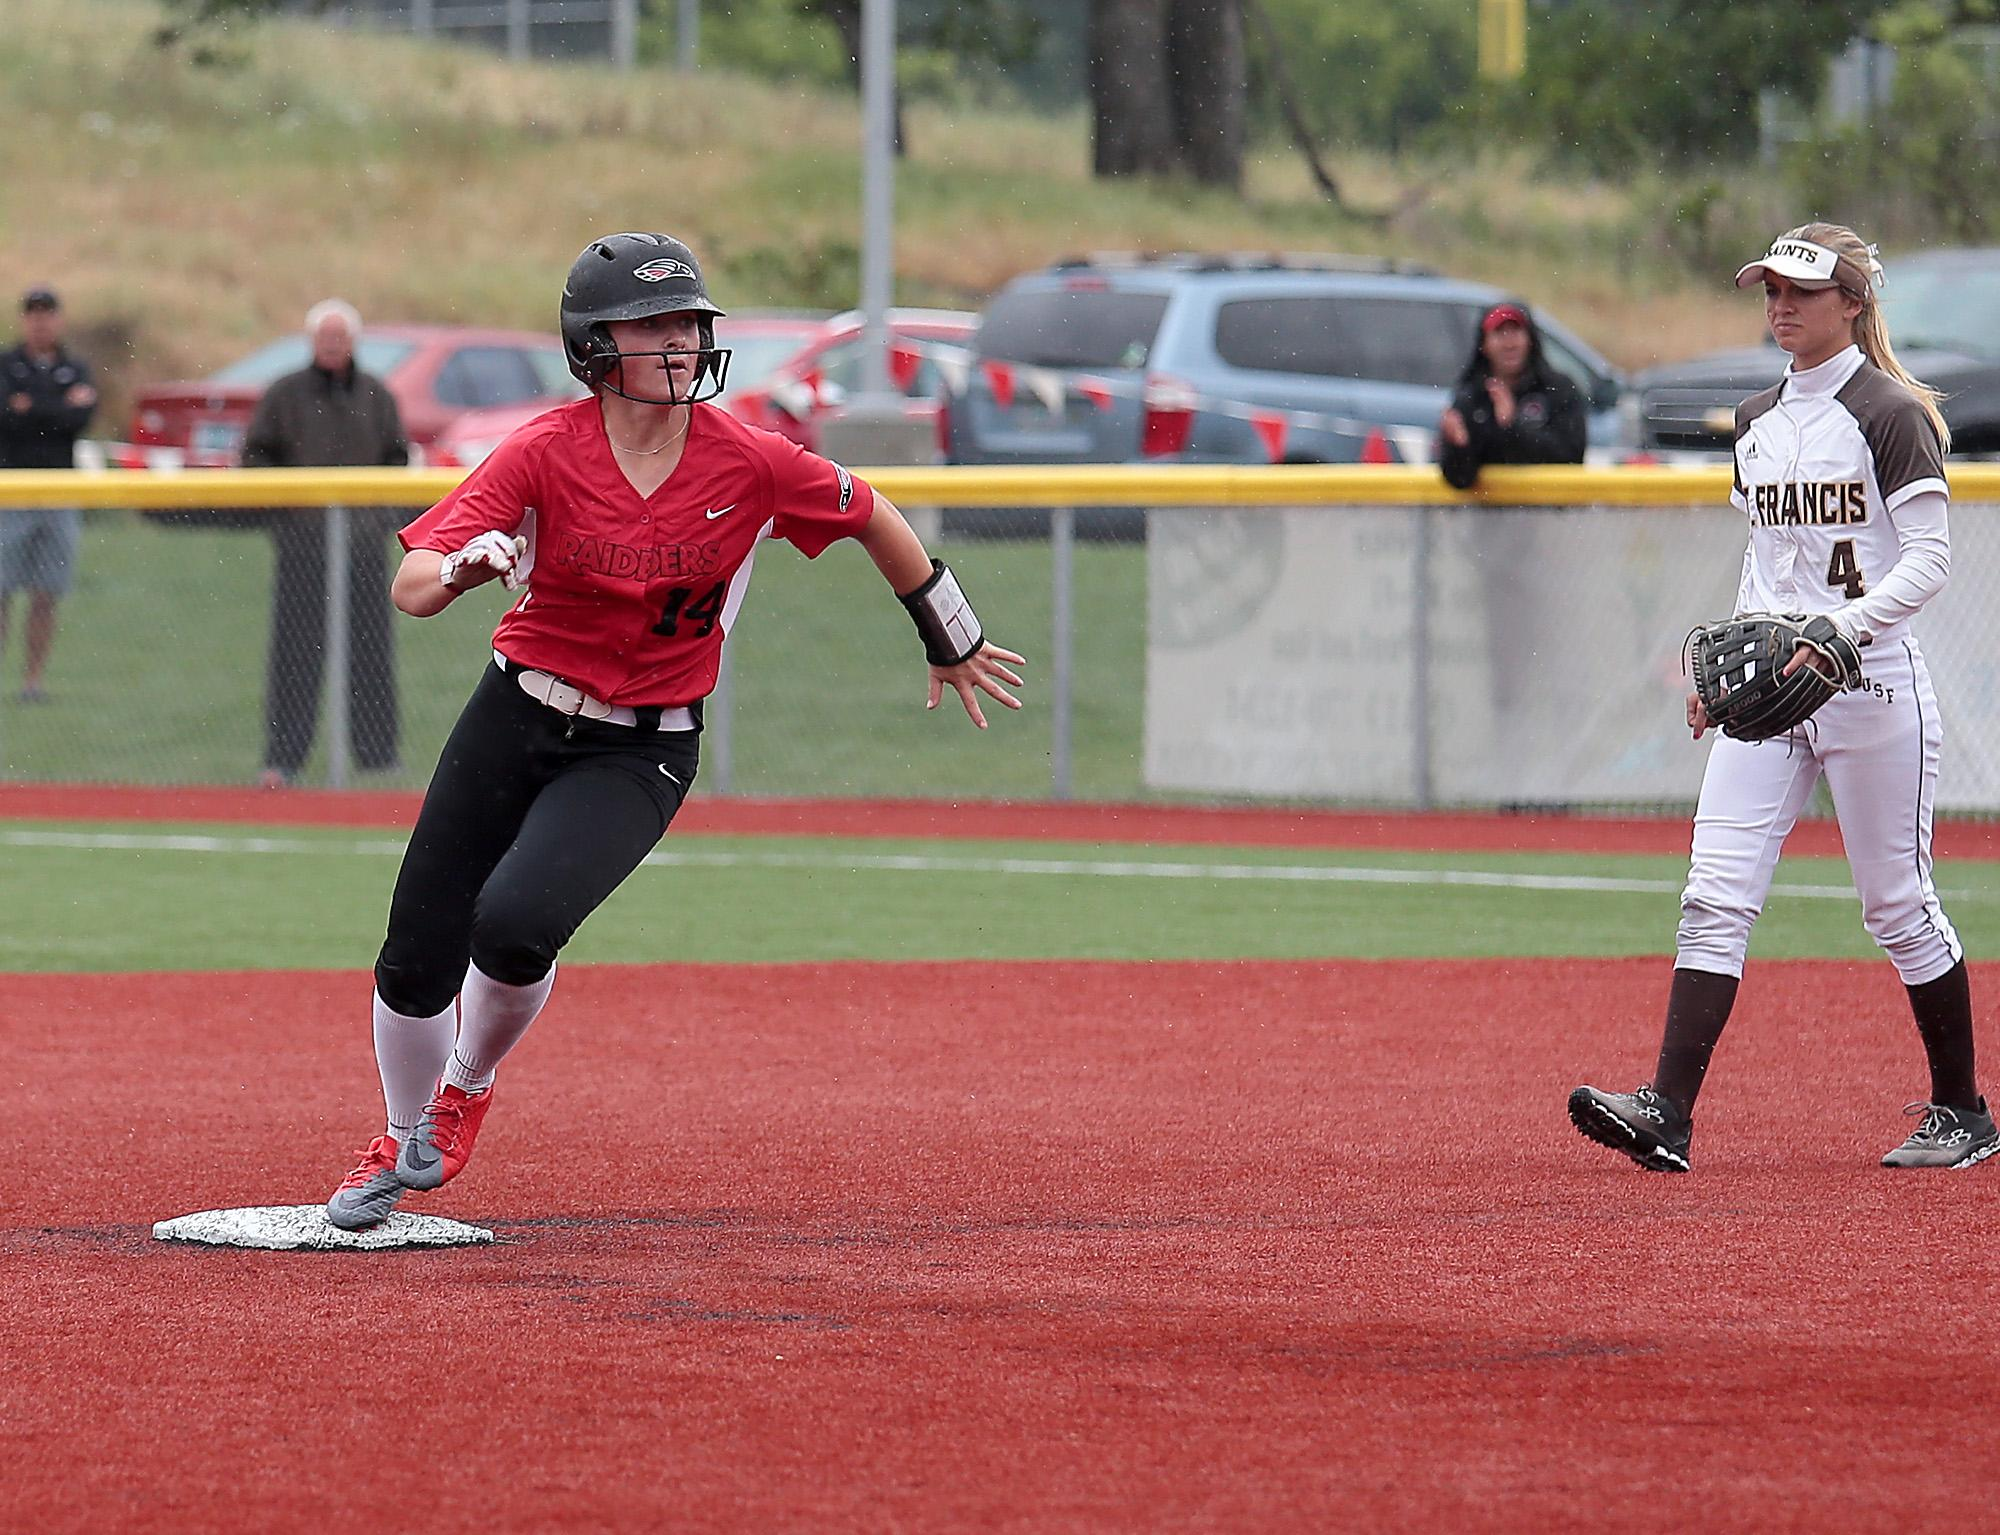 Southern Oregon University freshman Avery Morehead-Hutsell rounds second, as St. Francis infielder Brooke Karraker looks on, at US Cellular Community Park on Wednesday.[PHOTO BY:  LARRY STAUTH JR]